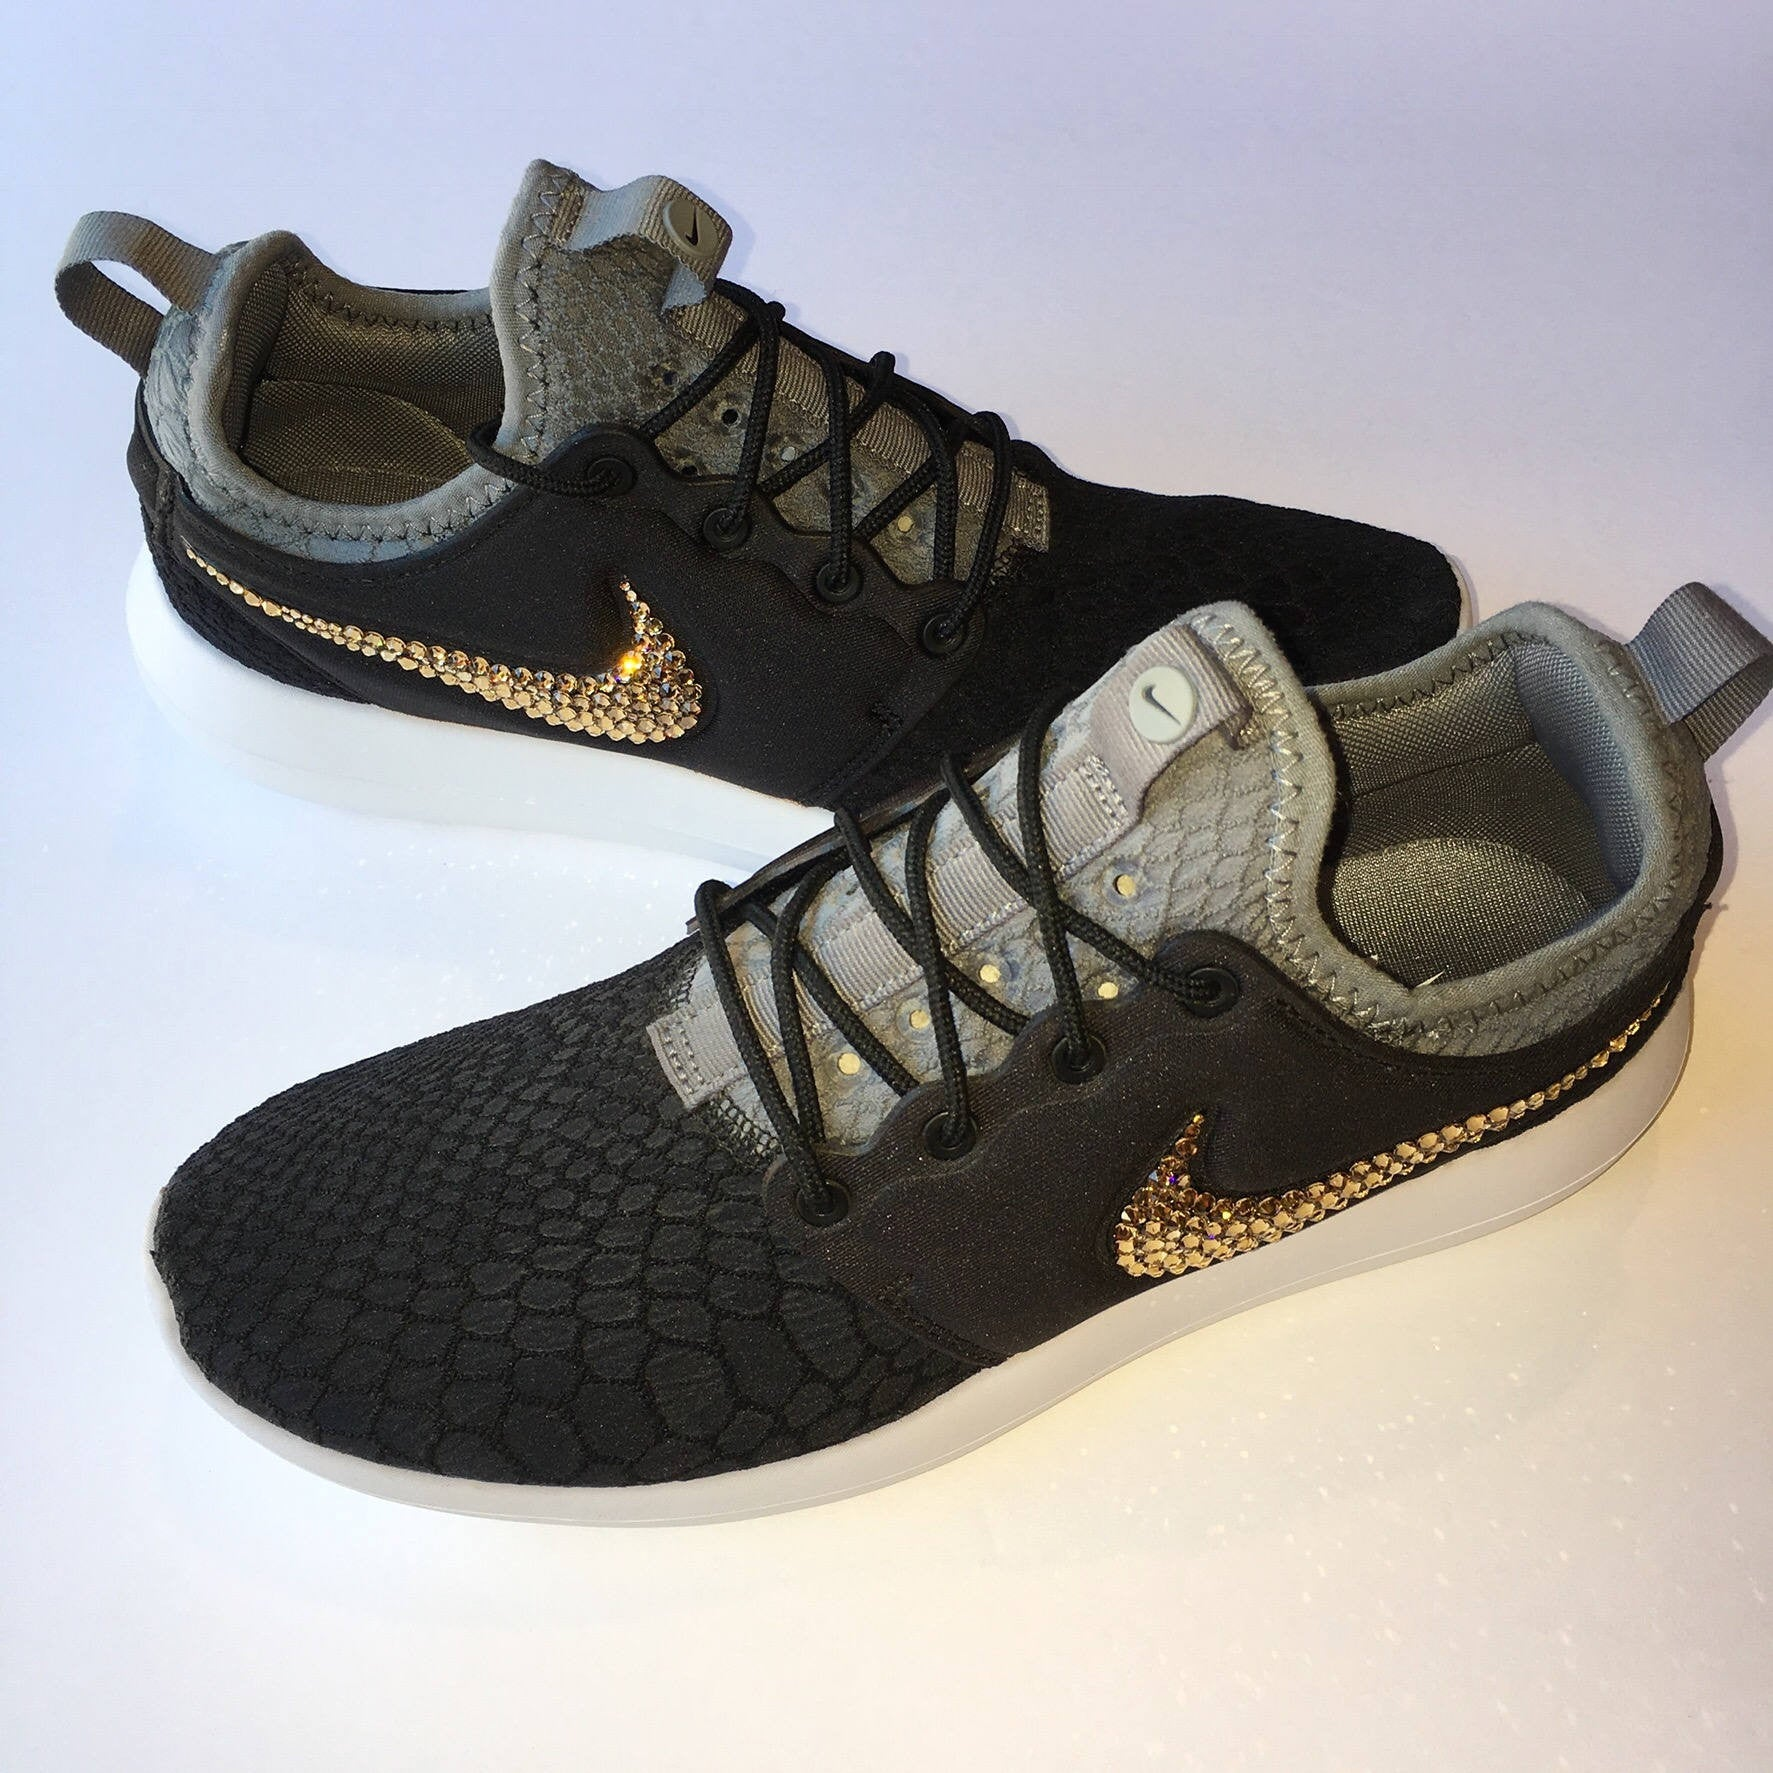 ... Bling Nike Roshe Two SE Shoes with Swarovski Crystals   Black   Gold    Bedazzled Authentic ... 043f6e292ba2